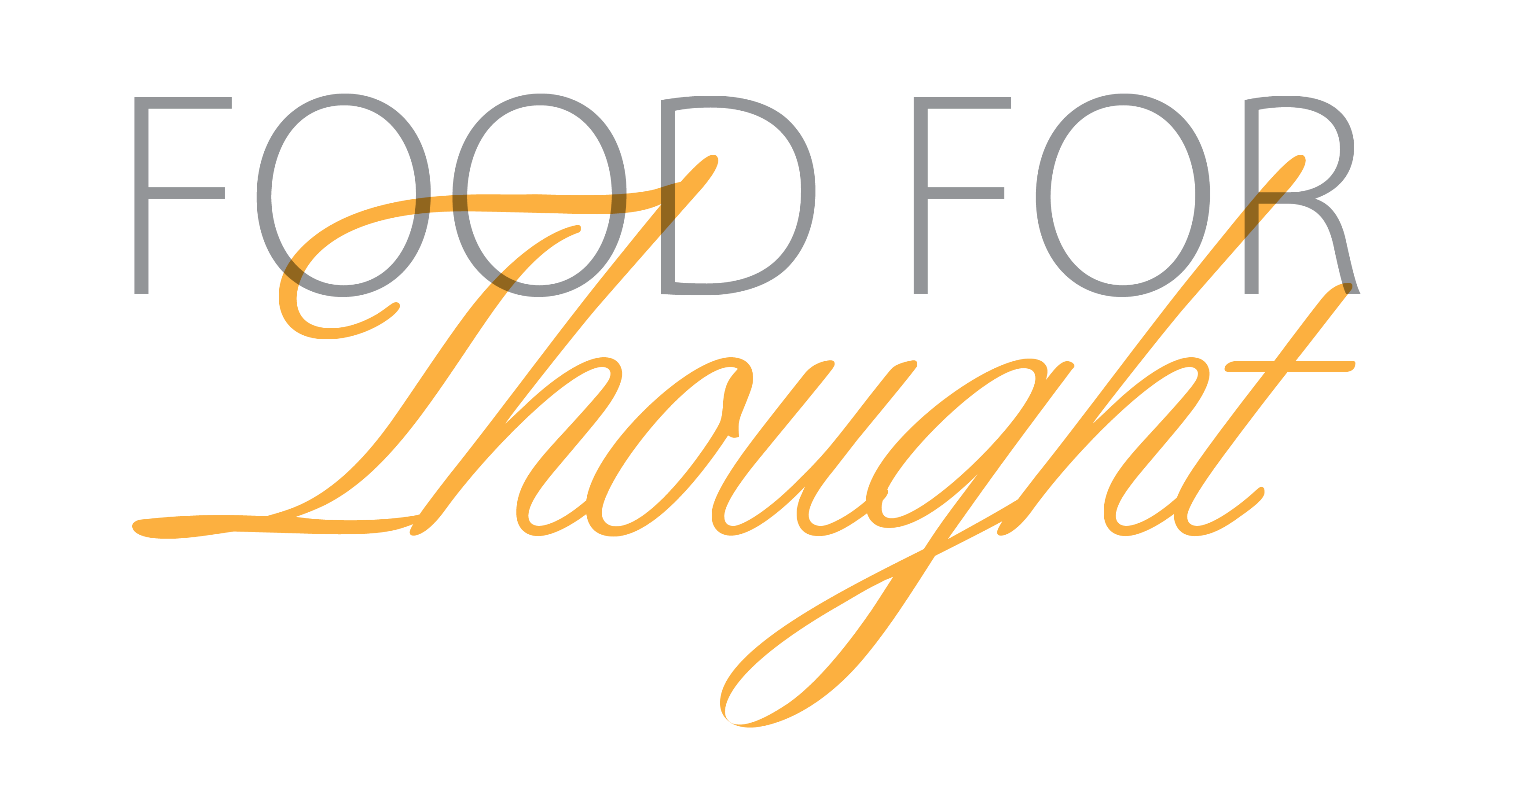 food for thought Food for thought, cardigan, ceredigion, united kingdom 15k likes food for thought has a frequently expanding menu to suit many dietary requirements.